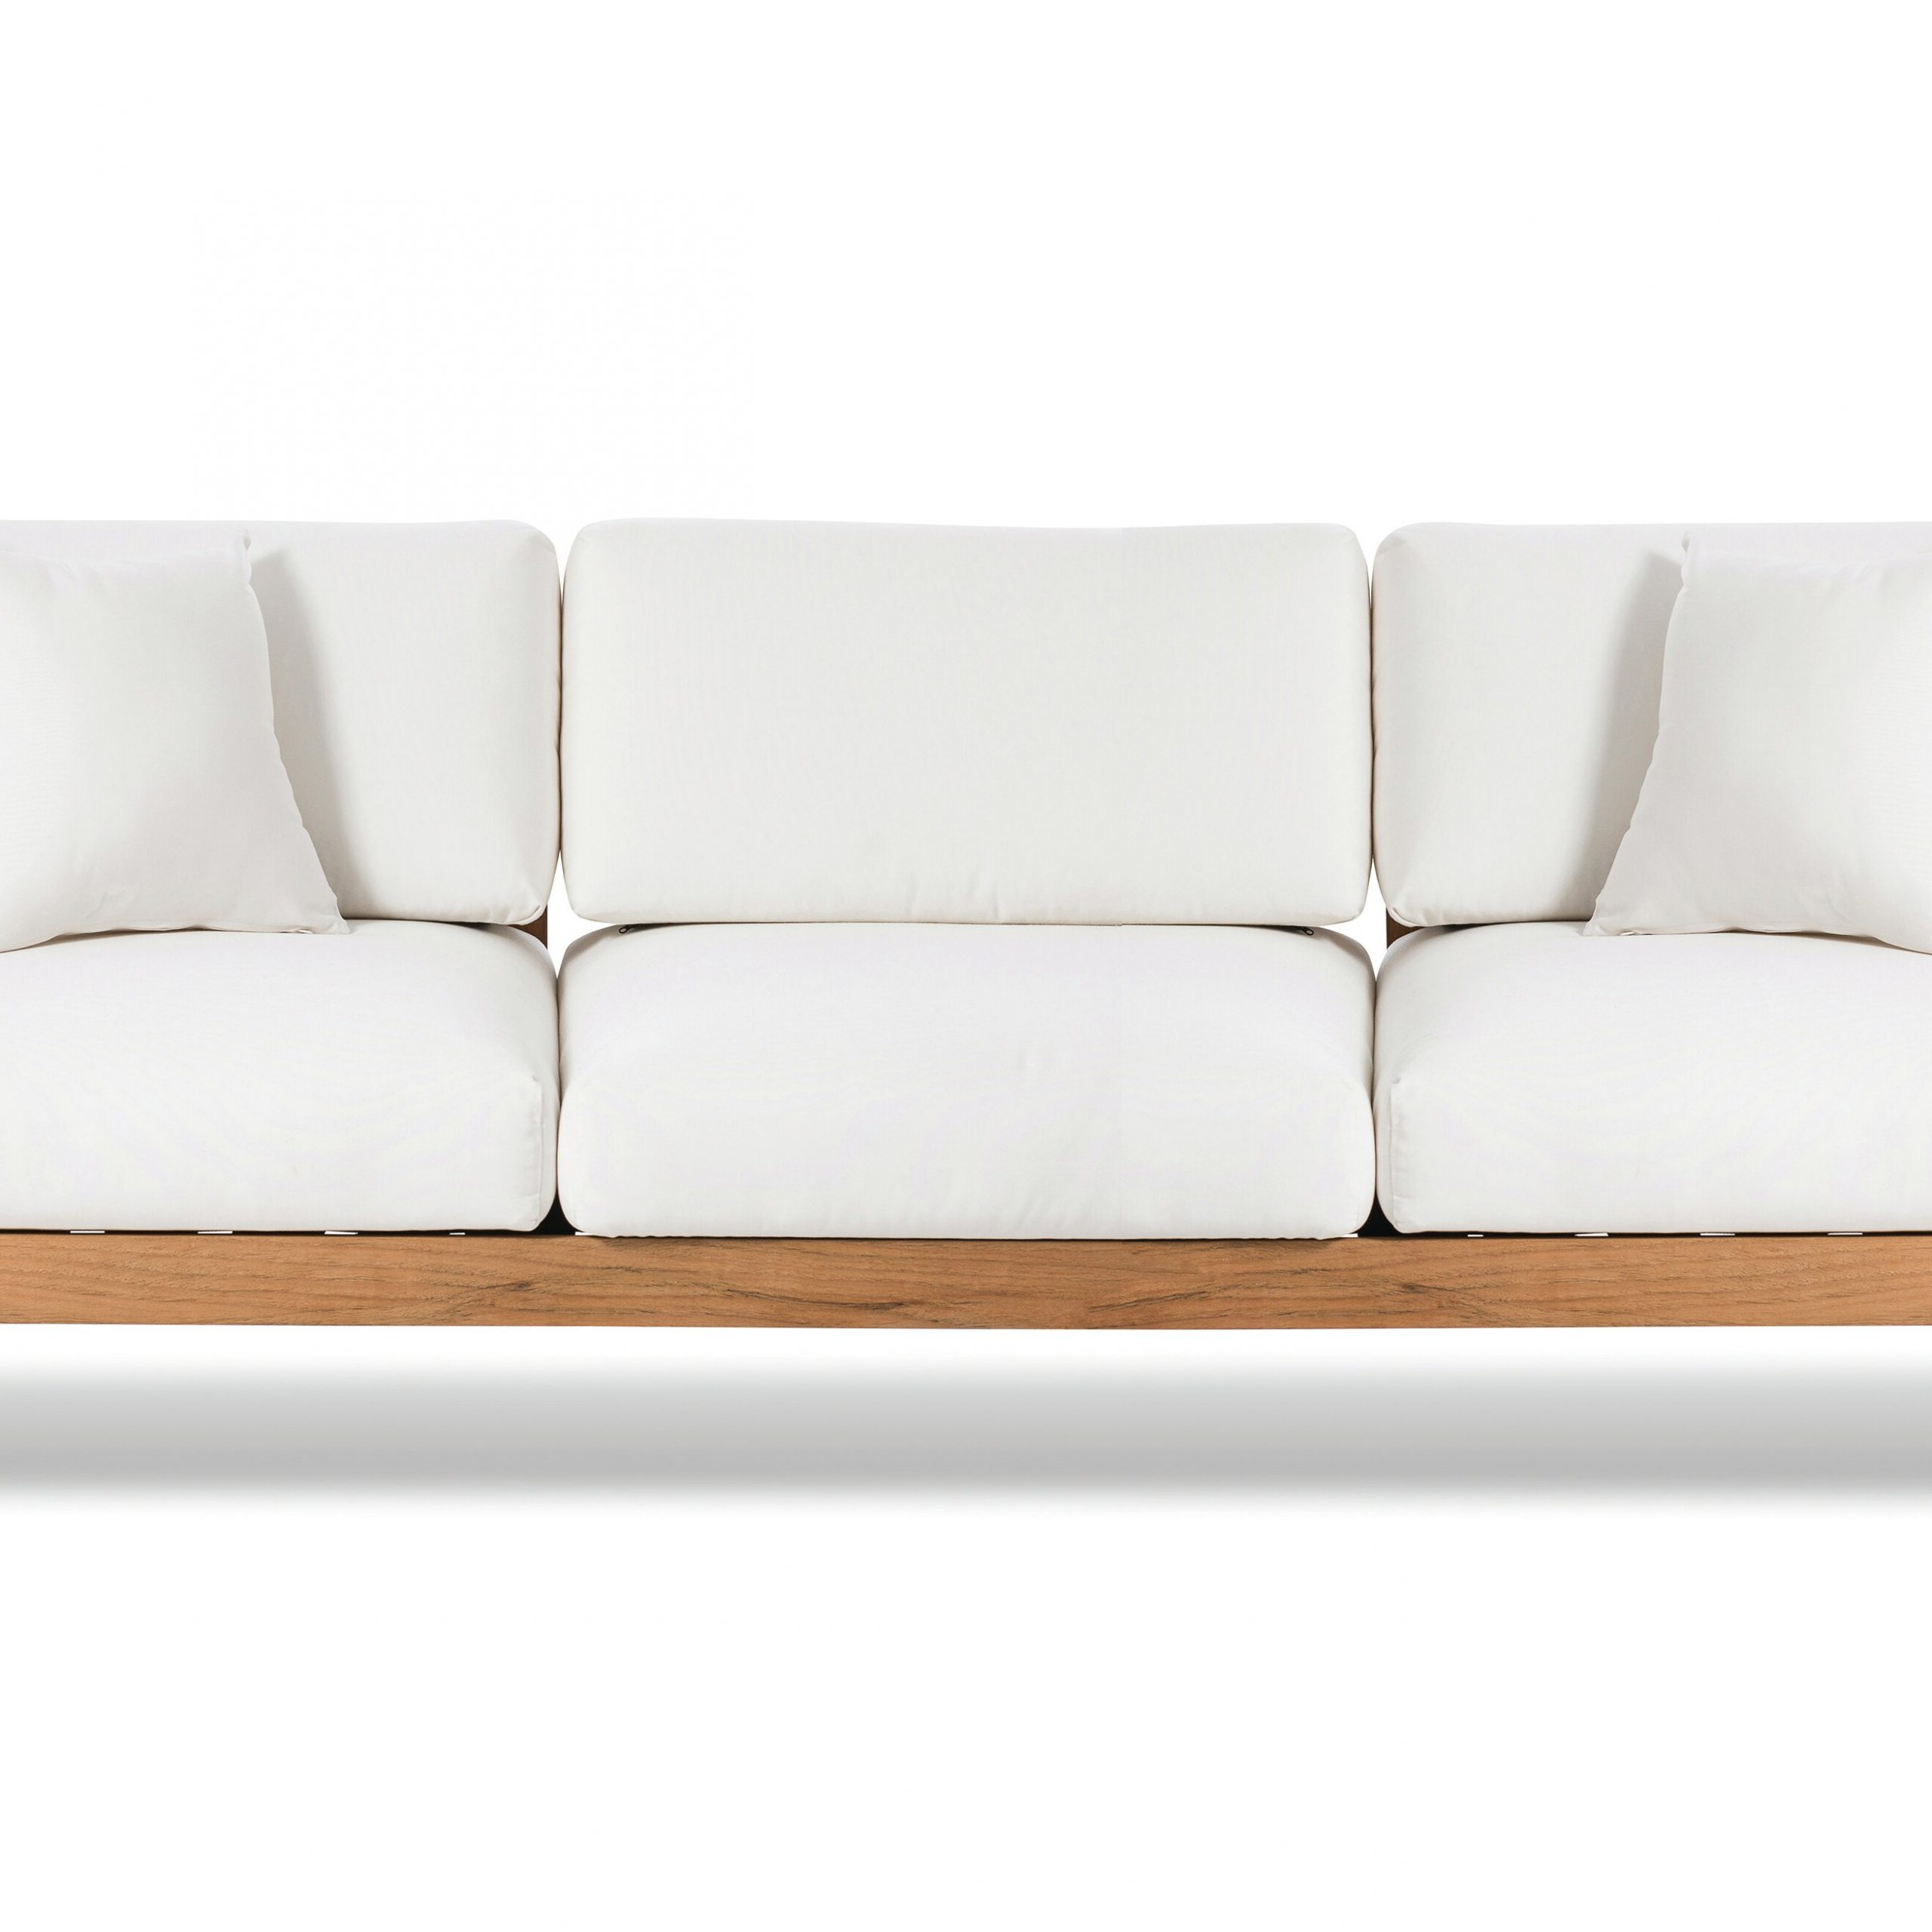 Maro Teak Patio Sofa With Sunbrella Cushions Intended For Well Known O'kean Teak Patio Sofas With Cushions (Gallery 10 of 25)